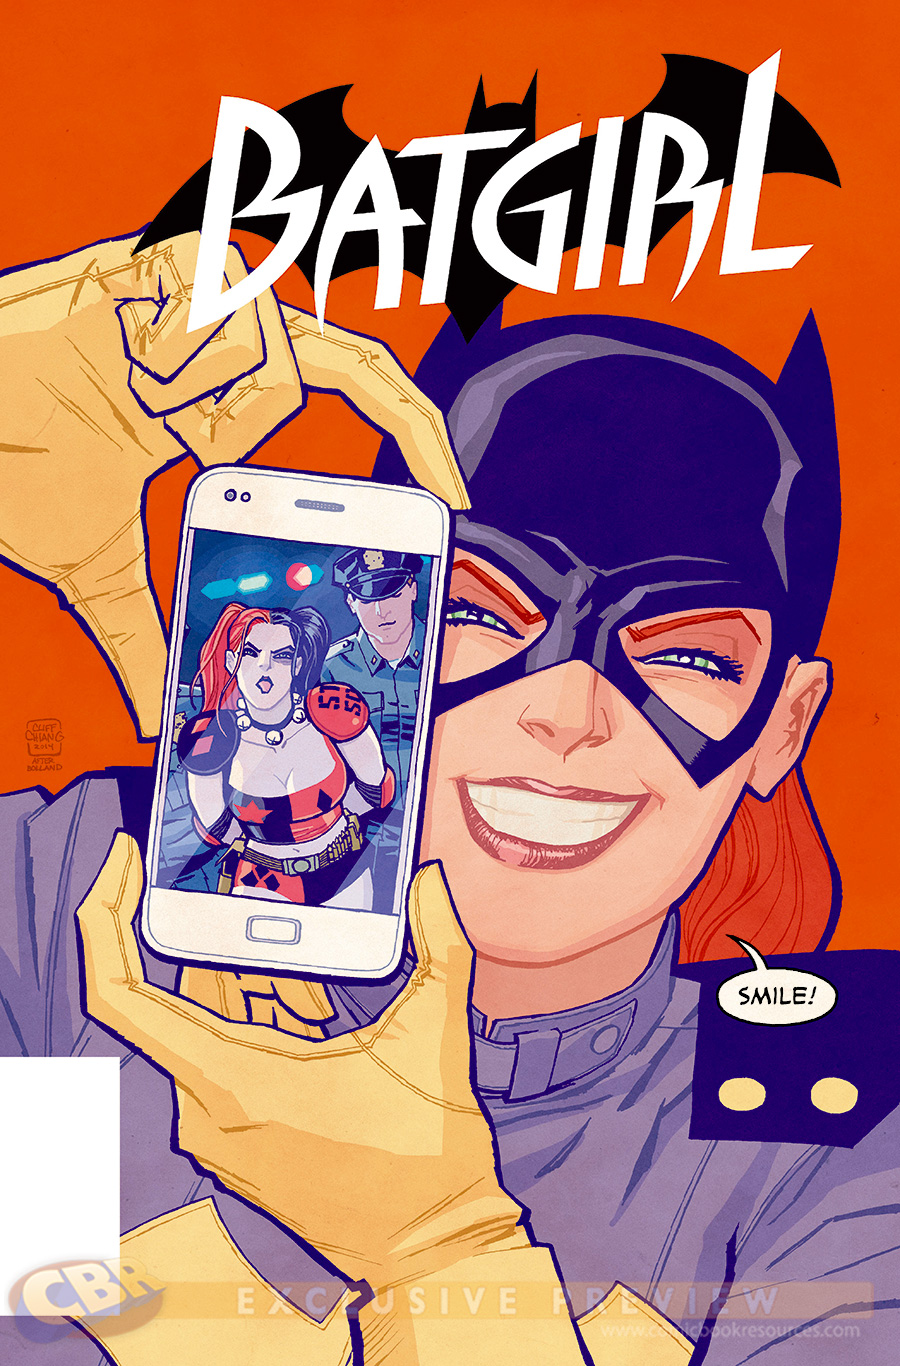 Batgirl #39 by Cliff Chiang